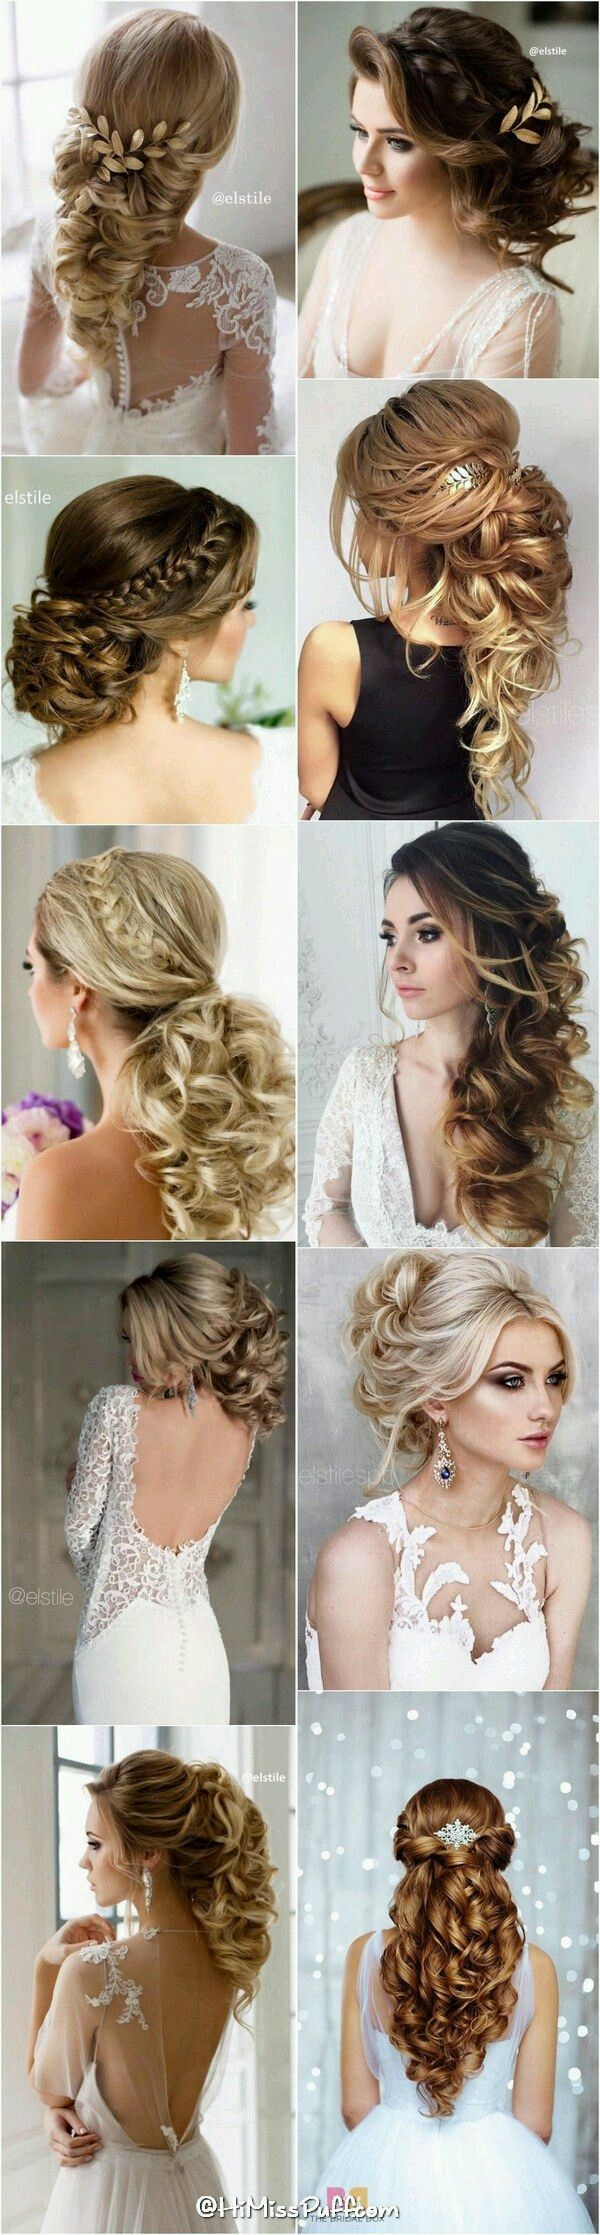 Arabic hair styles for wedding day hairstyle ideas pinterest